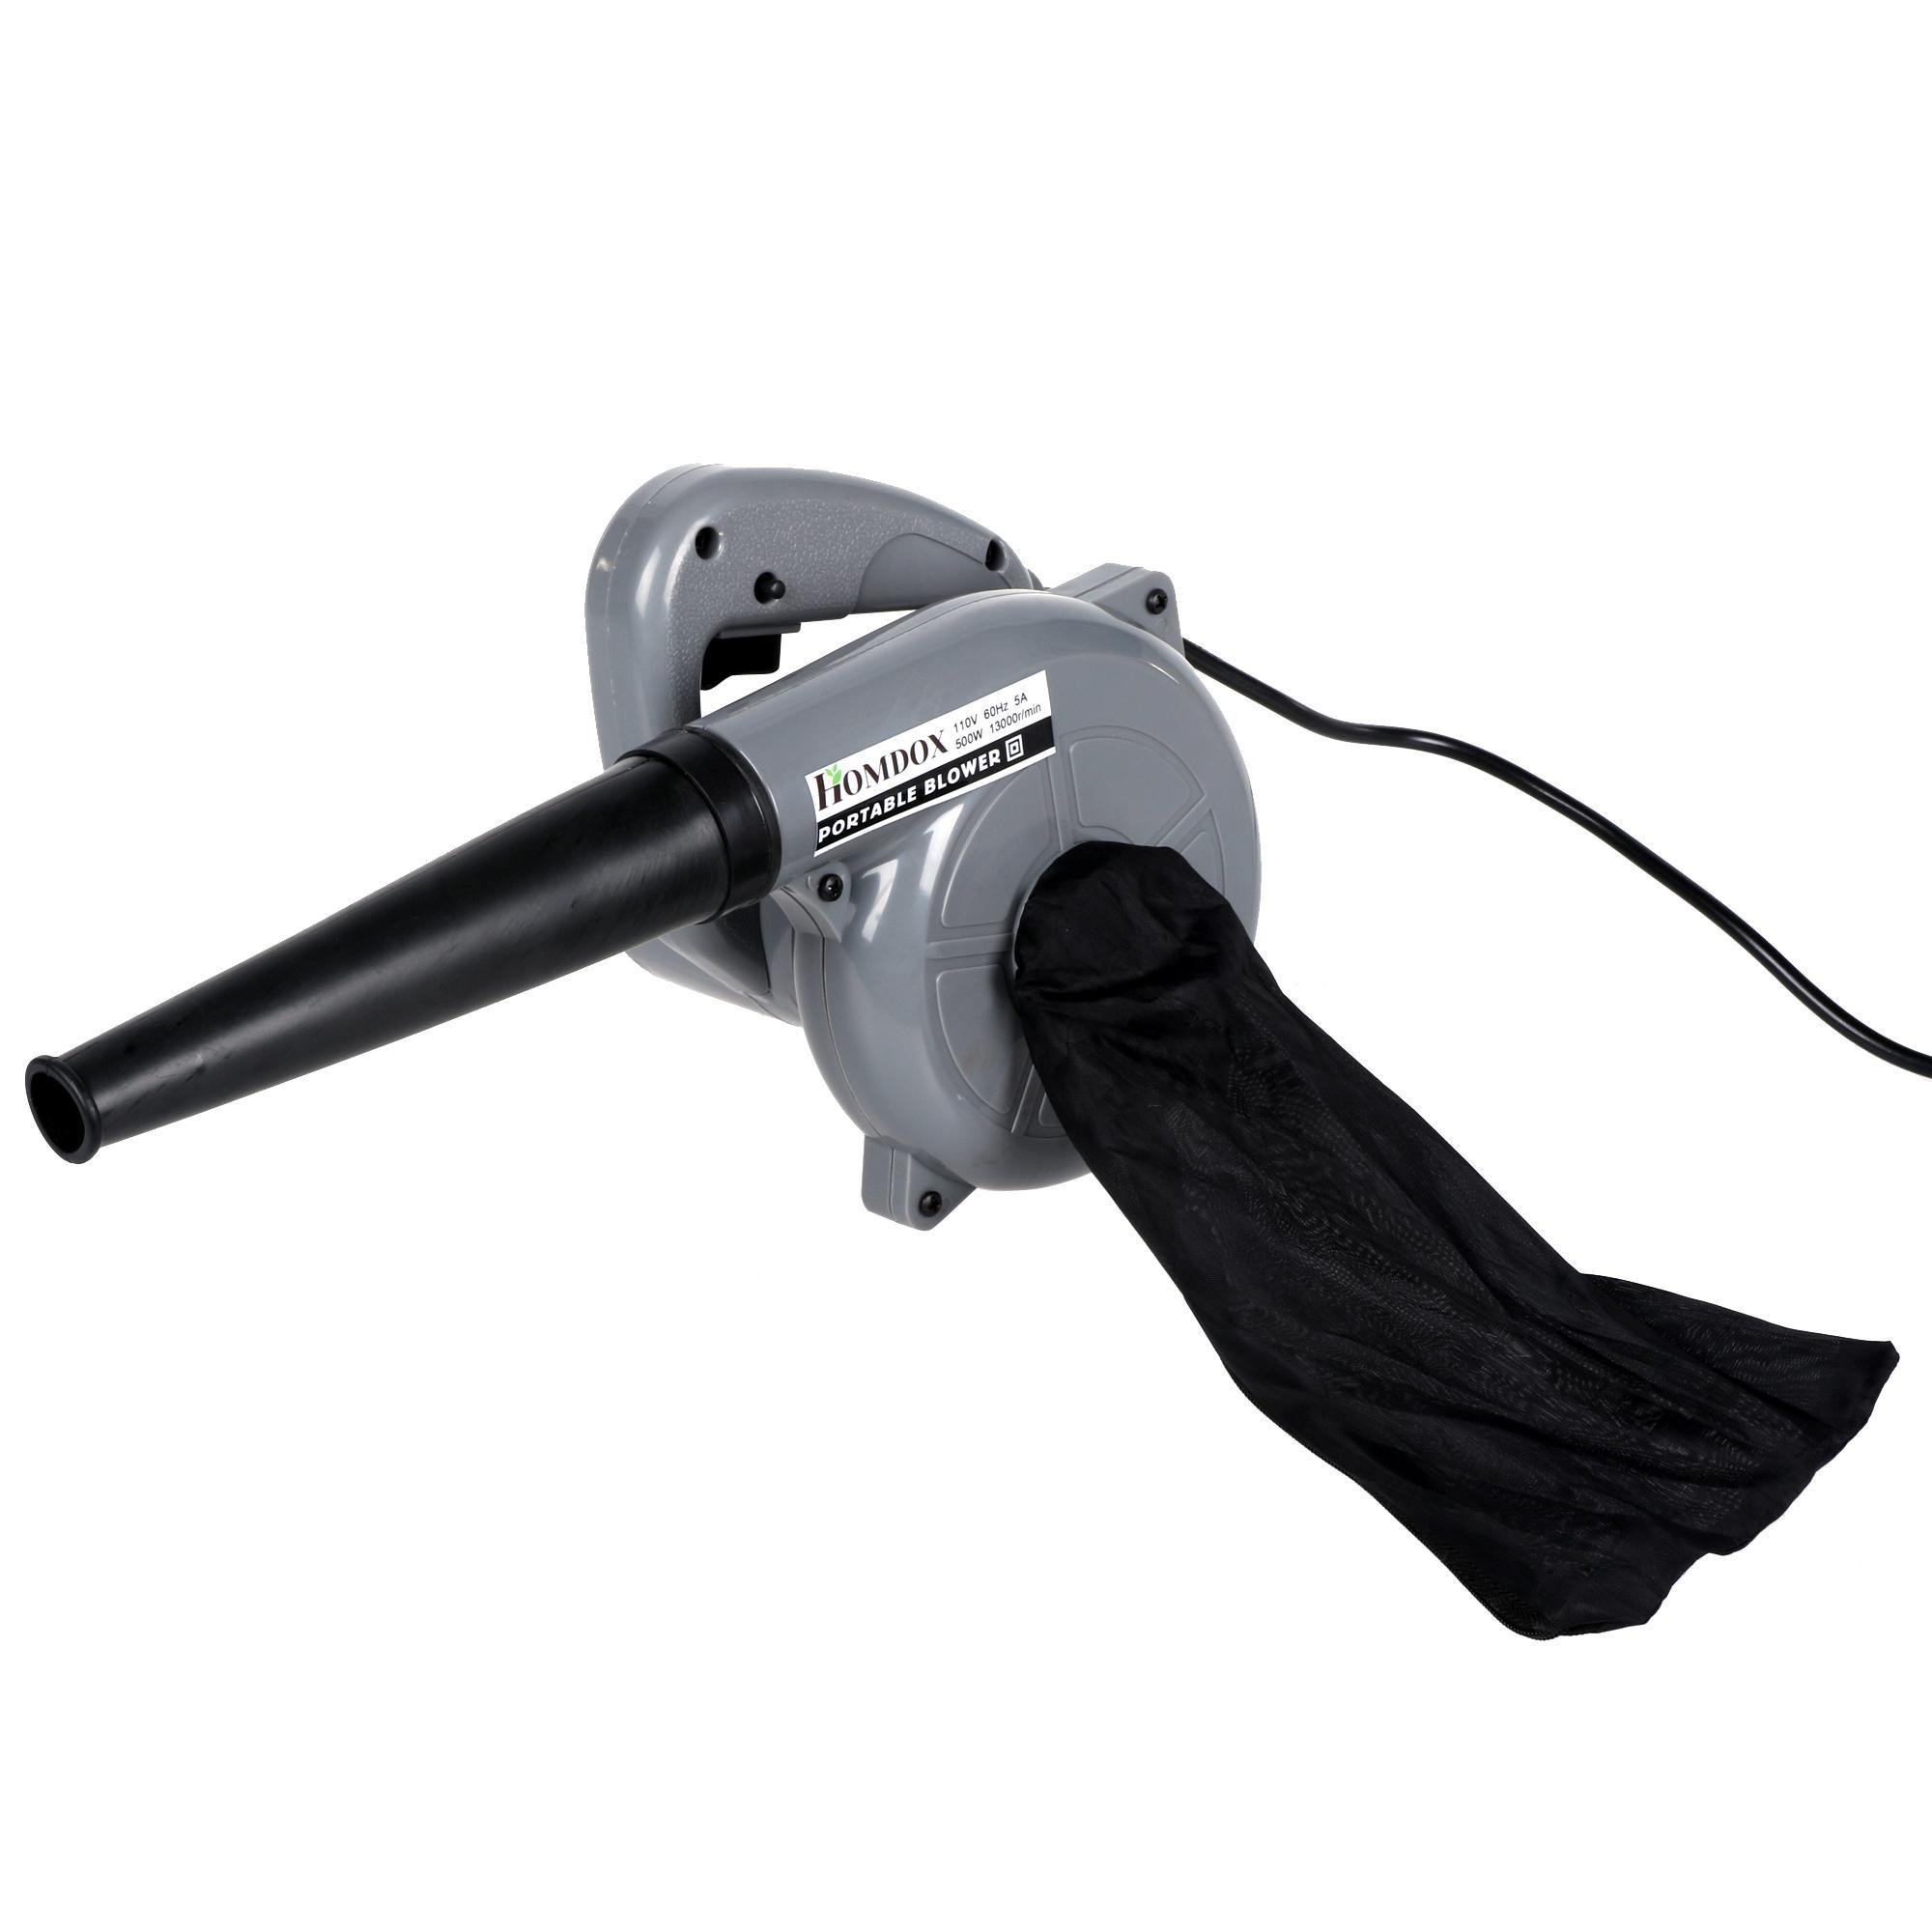 Meoket 500W Powerful Electric Handheld Dust Leaf Blower/Vacuum Cleaner for Shop Garage Garden, Vehicle Dryer